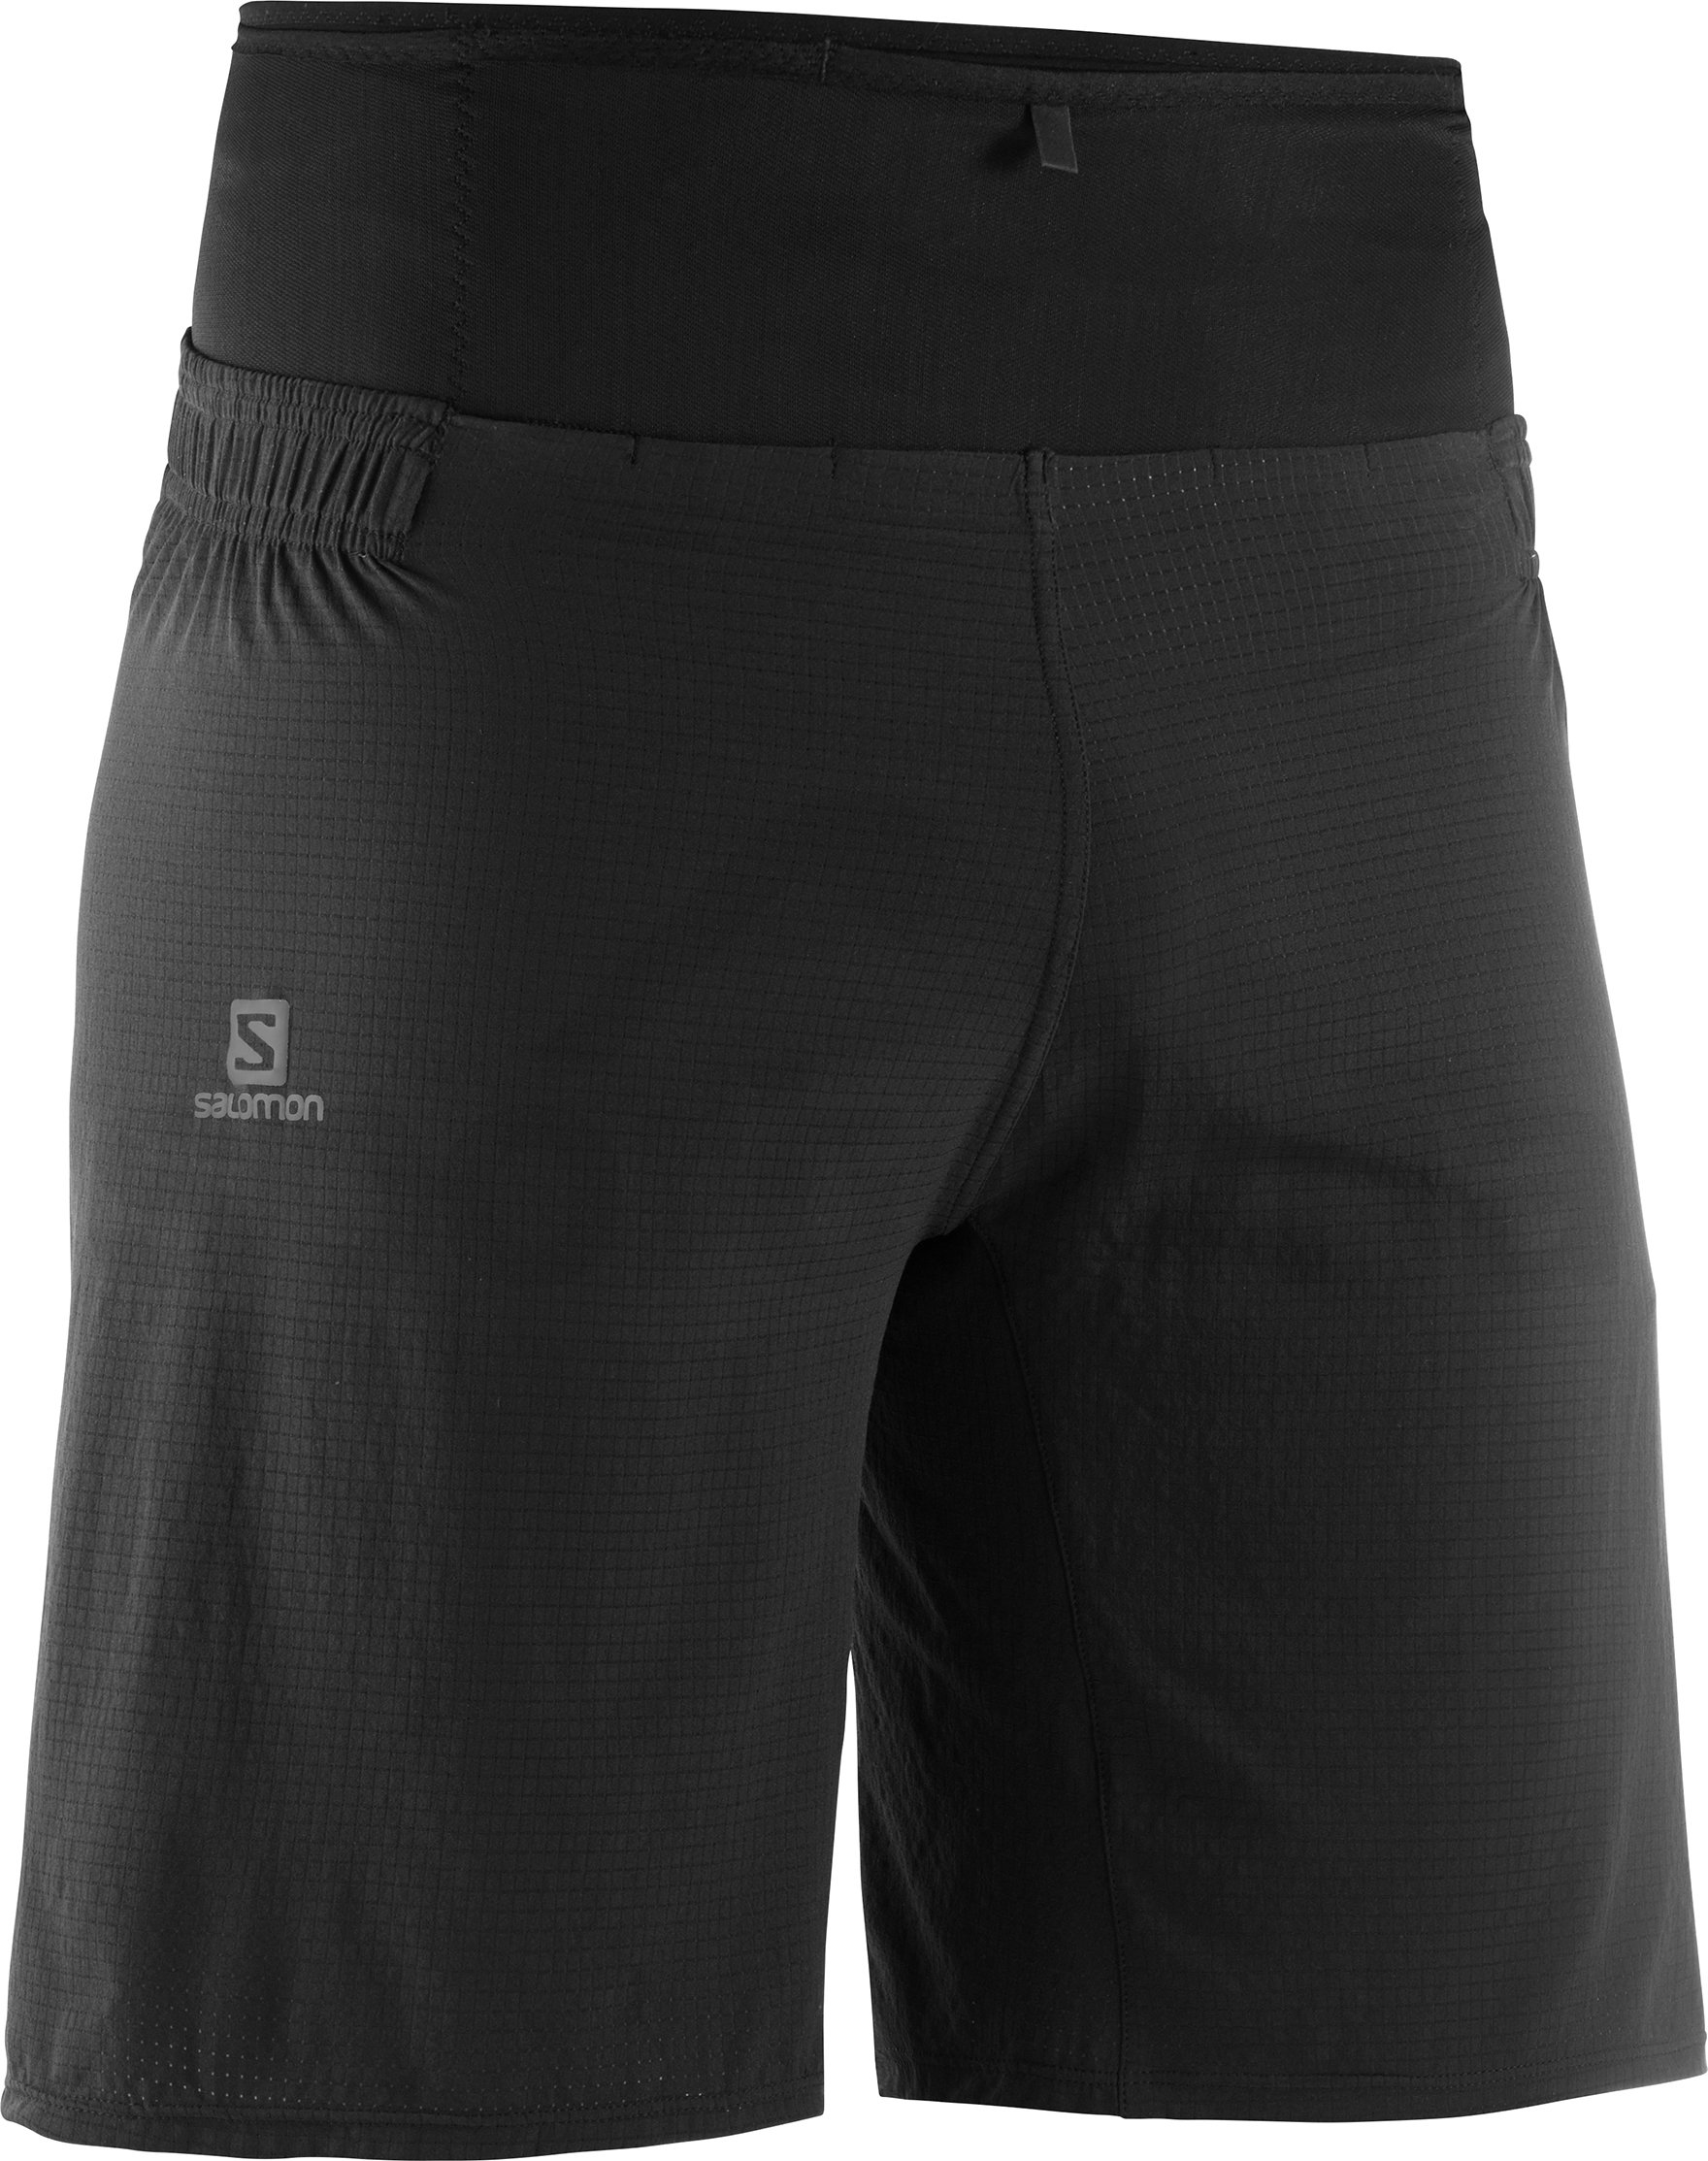 LC1046200_2_m_senseultrashort_black_run.jpg.originaln